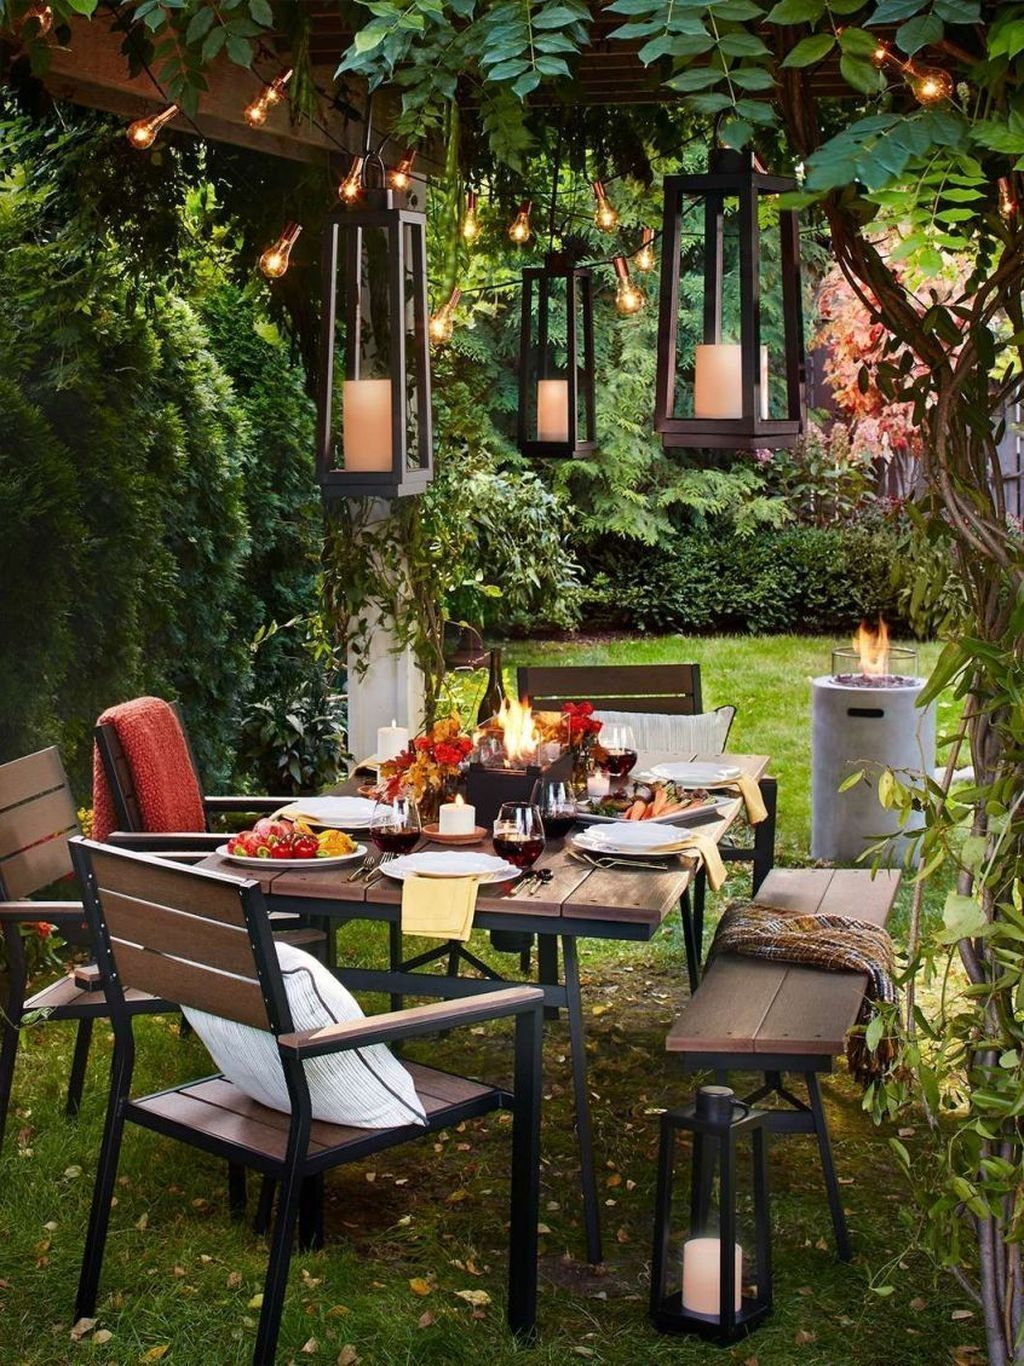 45 Outstanding Patio Yard Furniture Ideas For Fall To Try